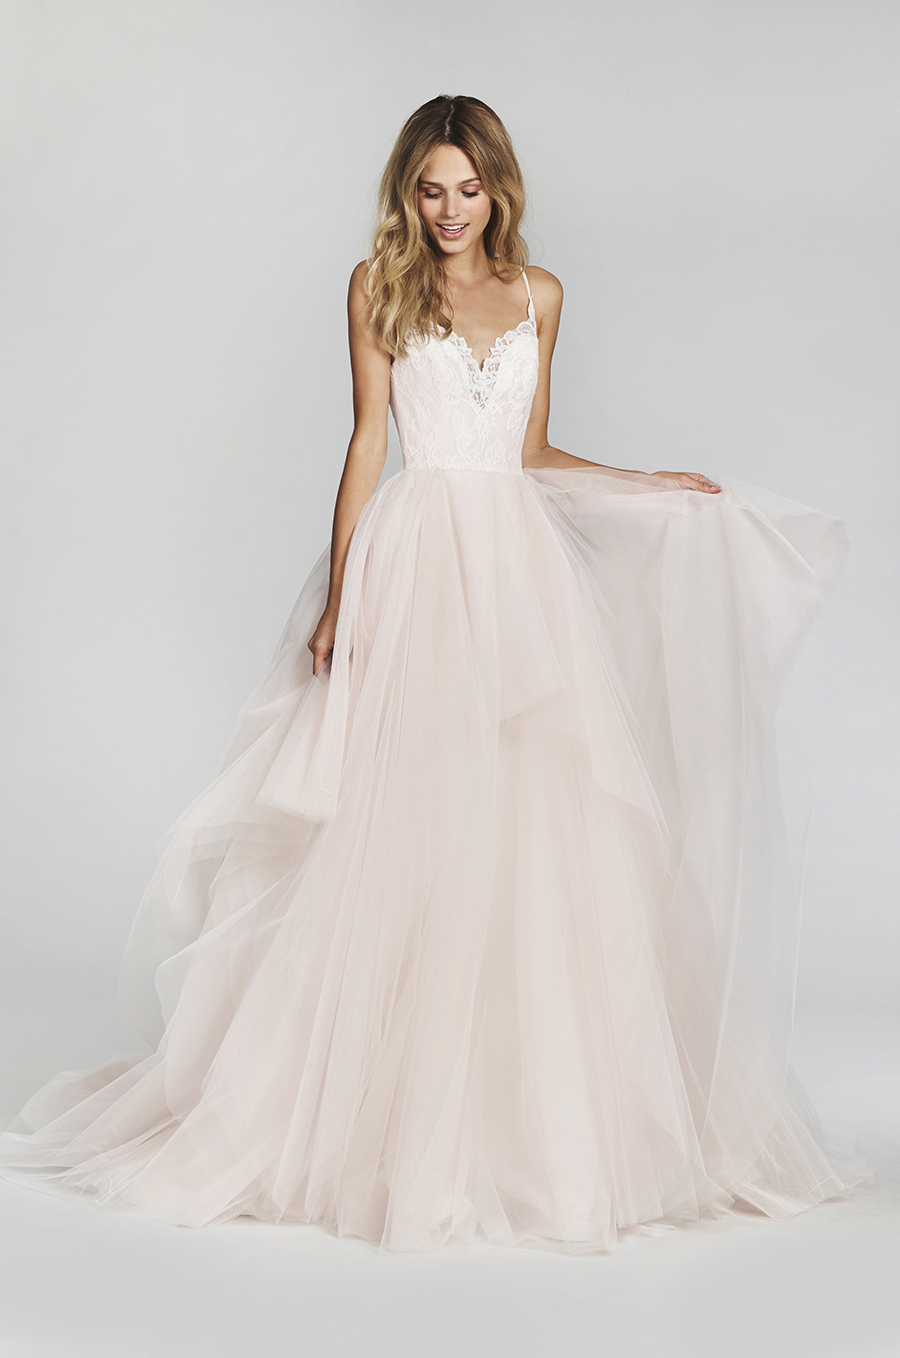 Blush by Hayley Paige Spring 2017 Bridal Gown Collection style 1708 Front